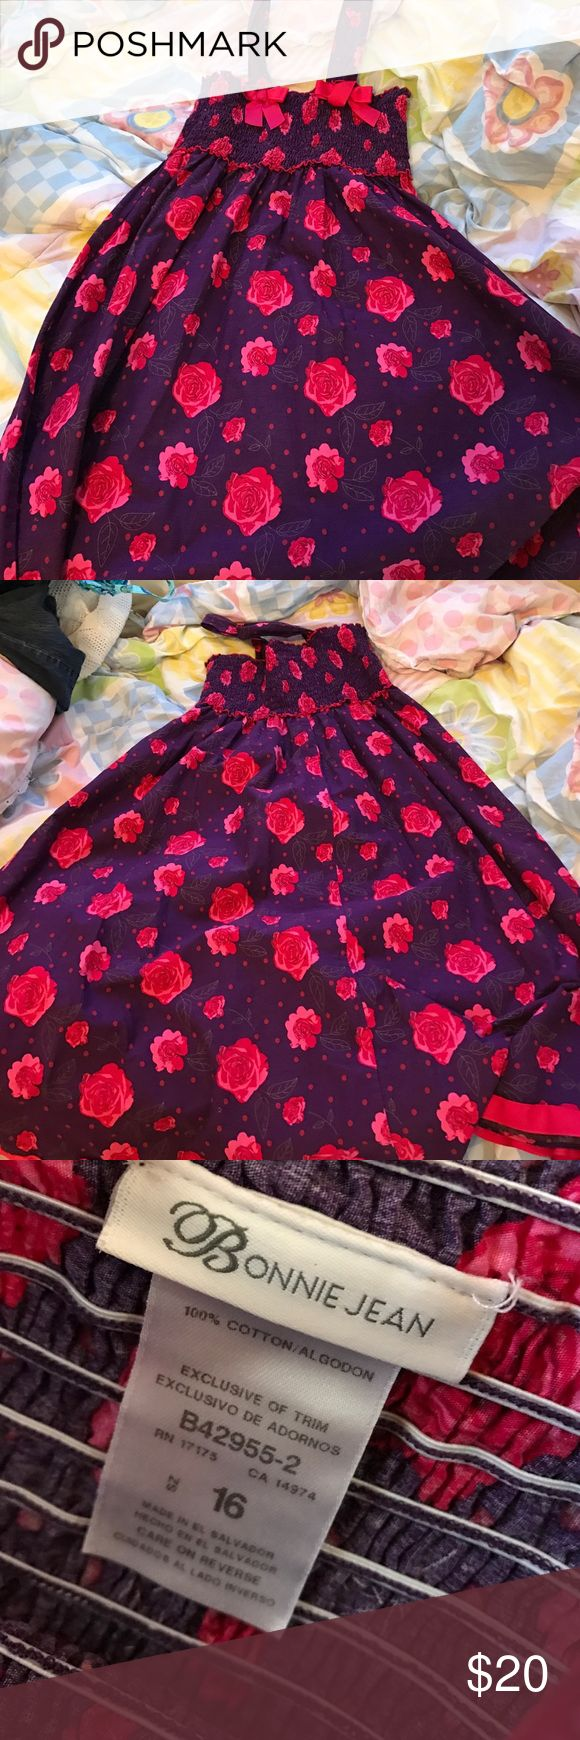 Red Rose Kids Maxi Dress Kids Red Rose and Purple Maxi Dress with two bows on the straps and best for any occasion. Bonnie Jean Dresses Casual